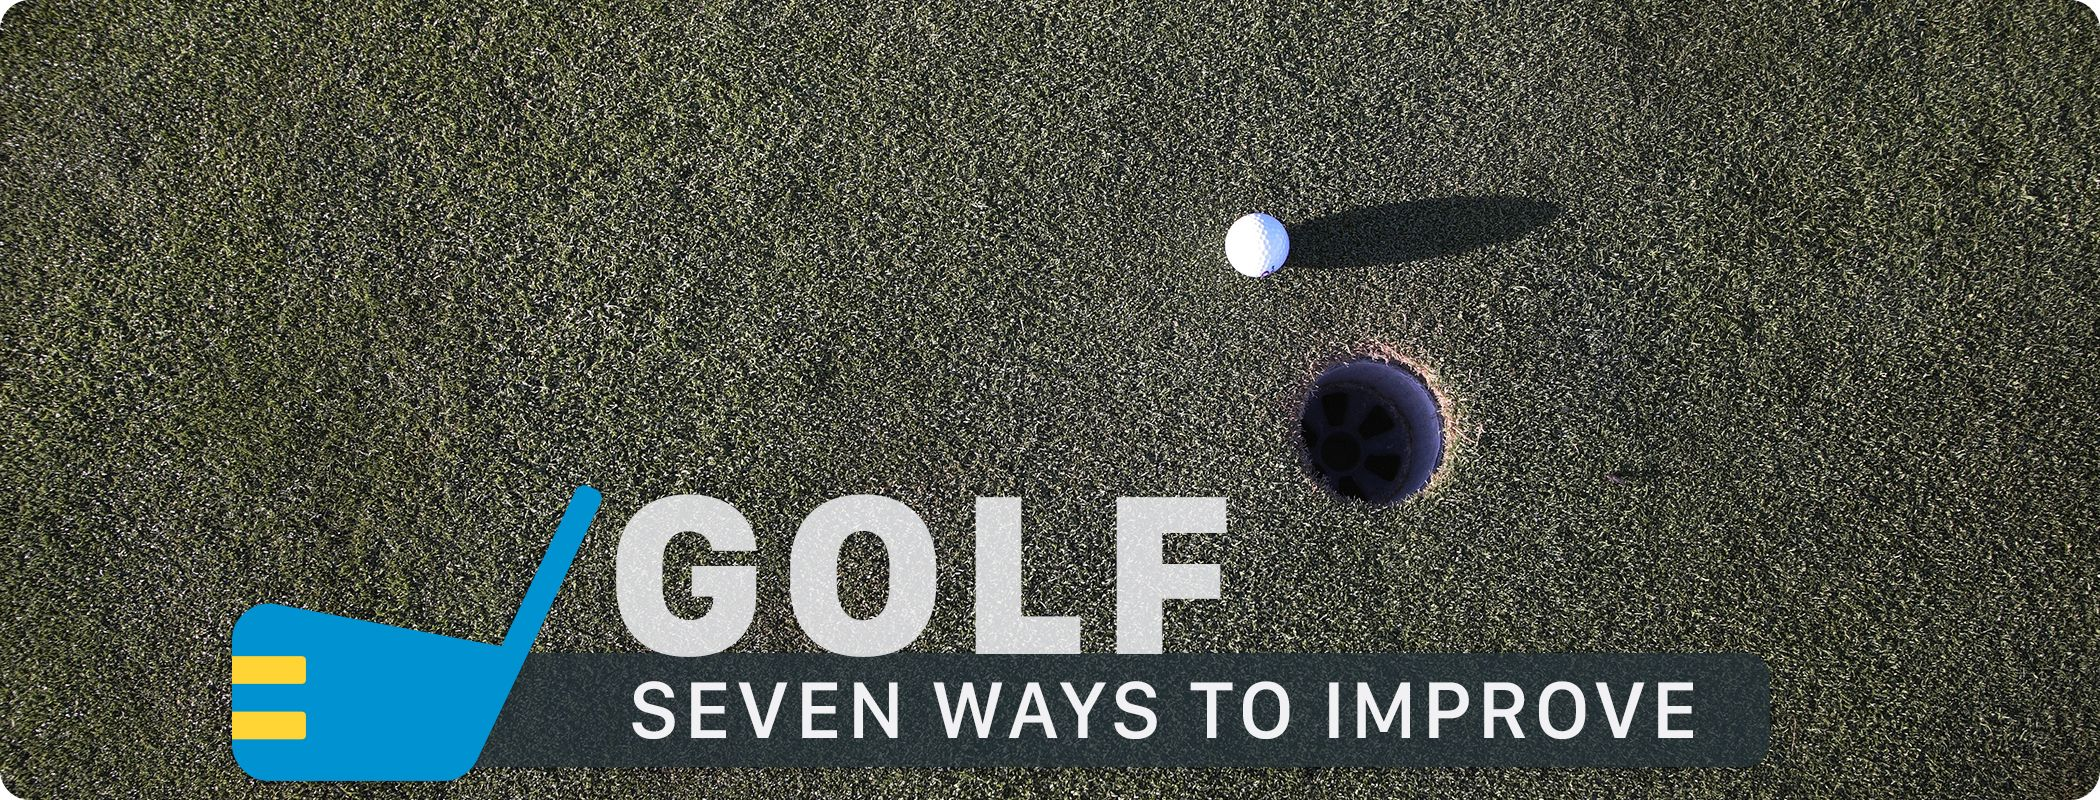 Golf - Seven Steps To Improve Your Game